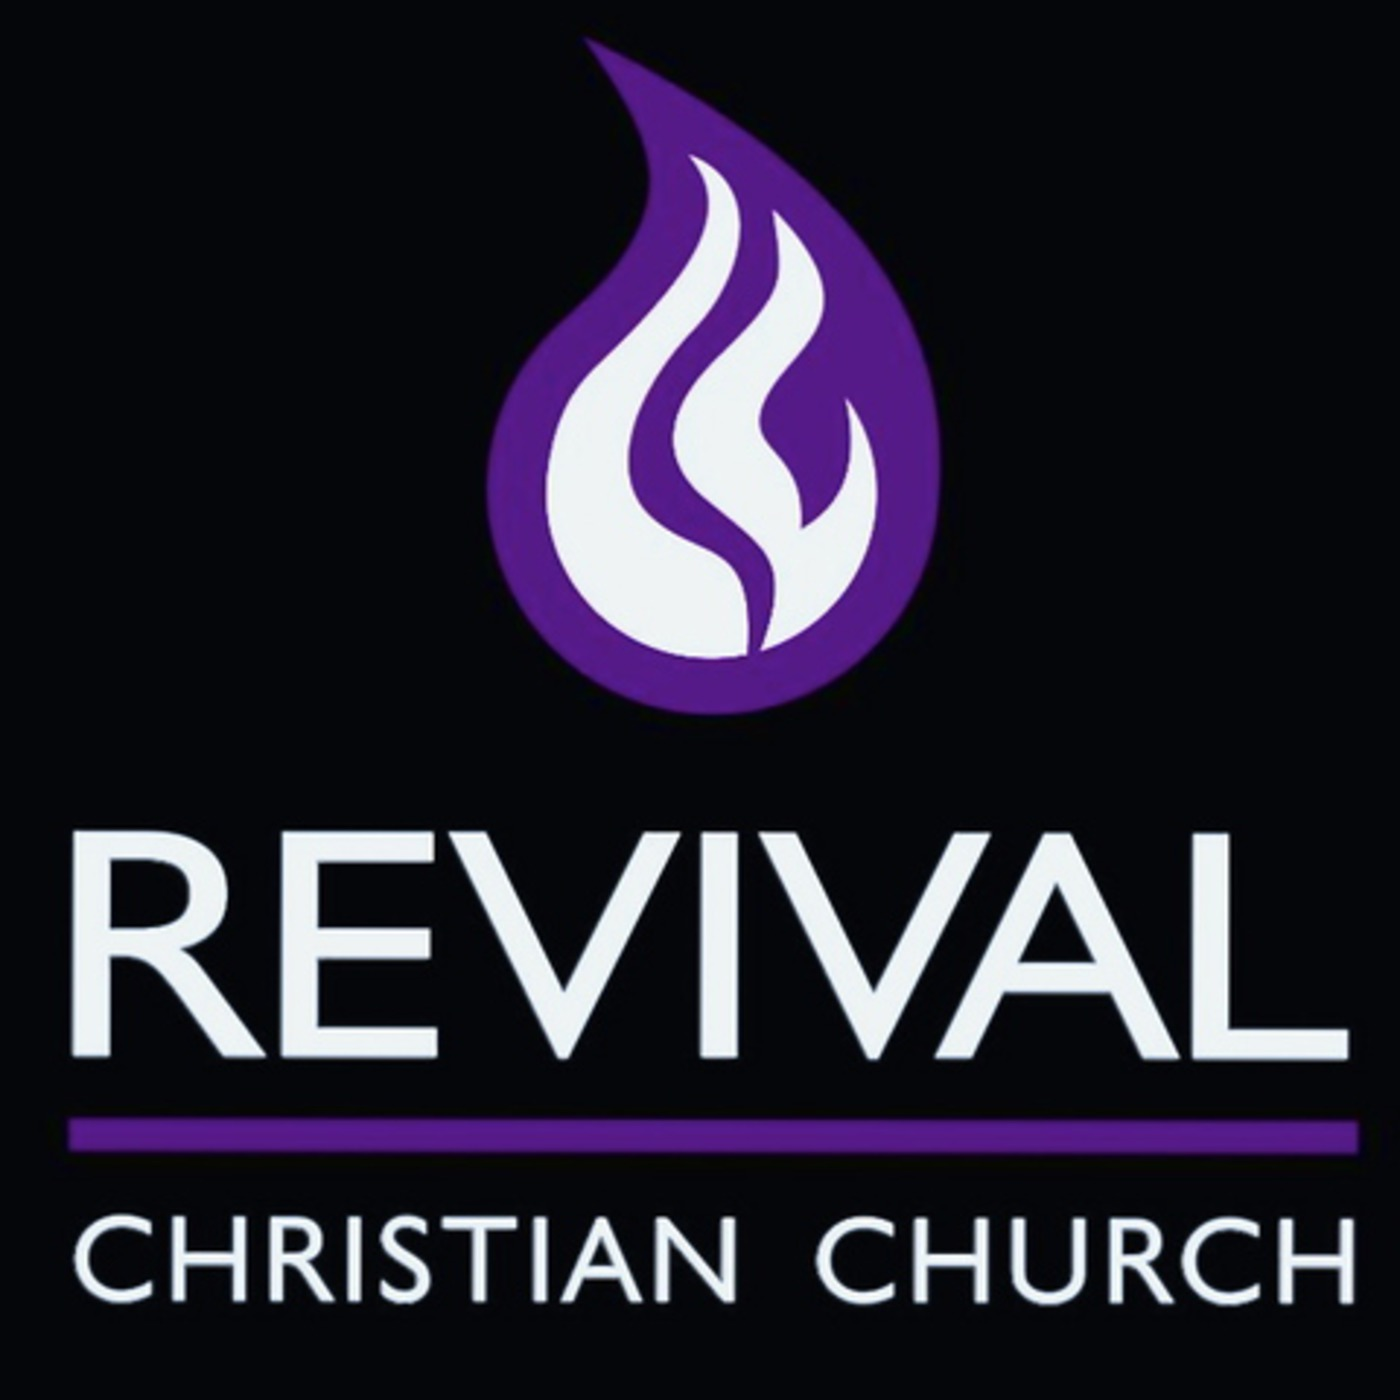 Revival Christian Church